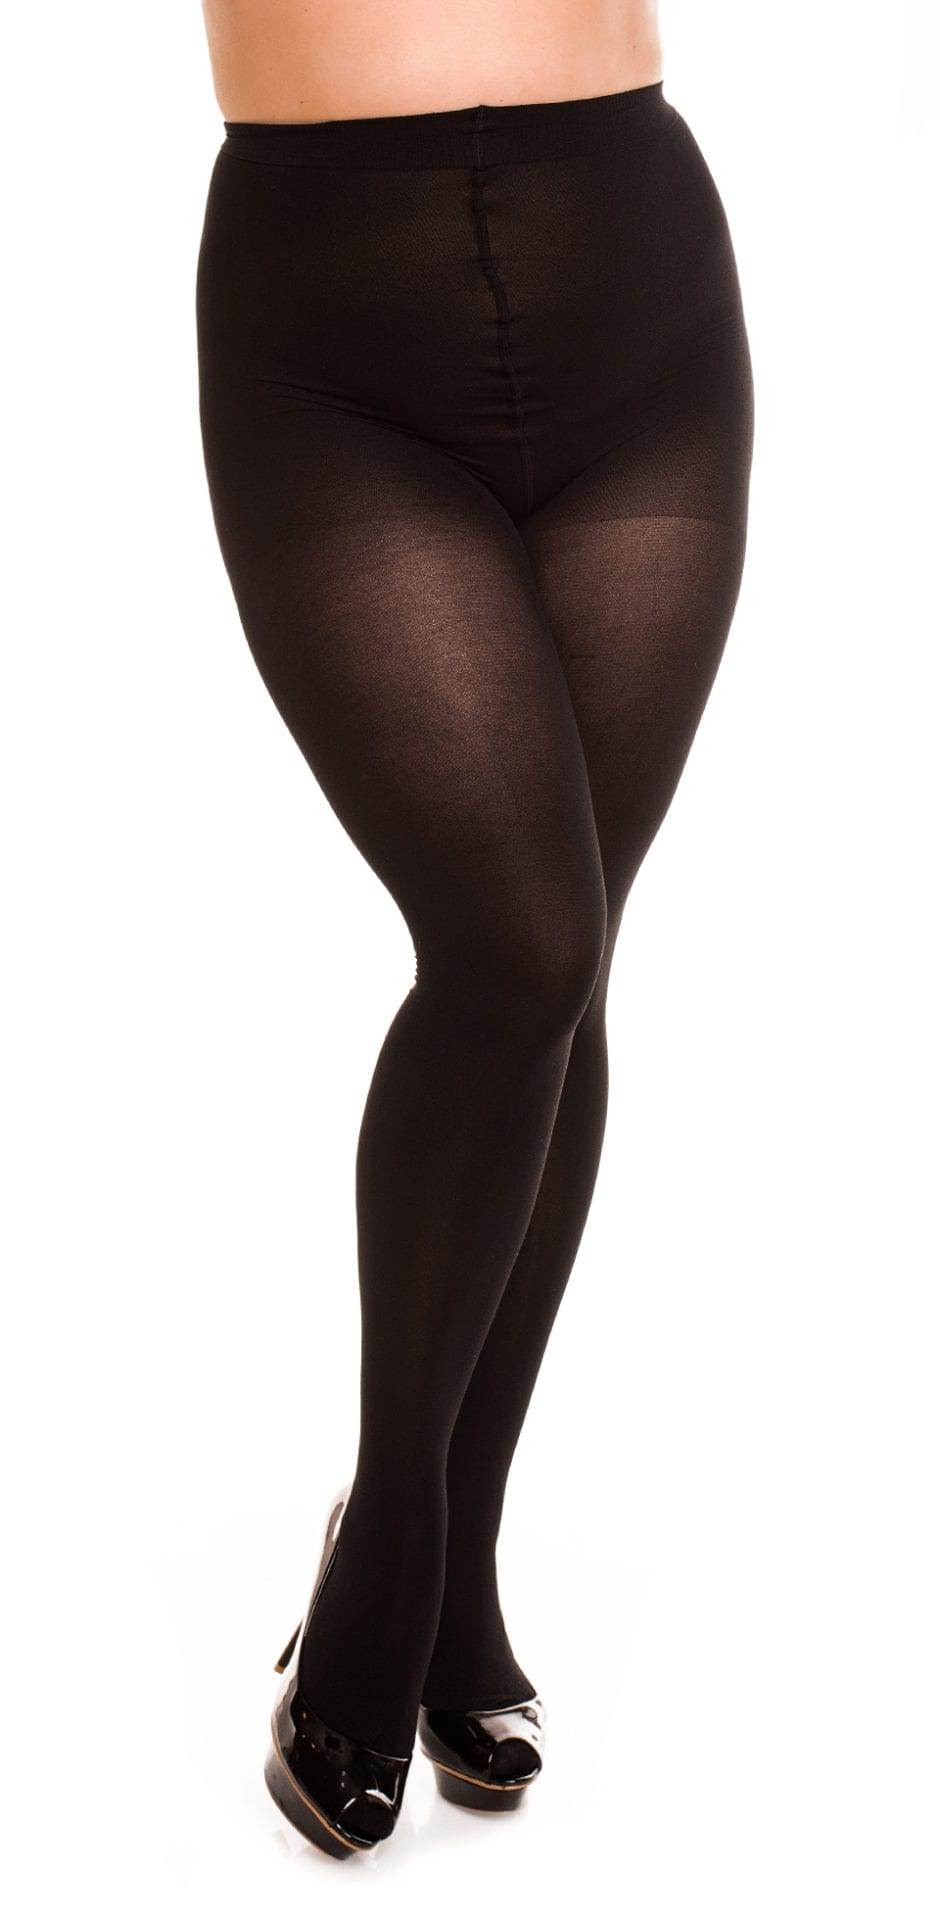 Plus size model wearing Glamory vital 70 support tights in color black front view close up